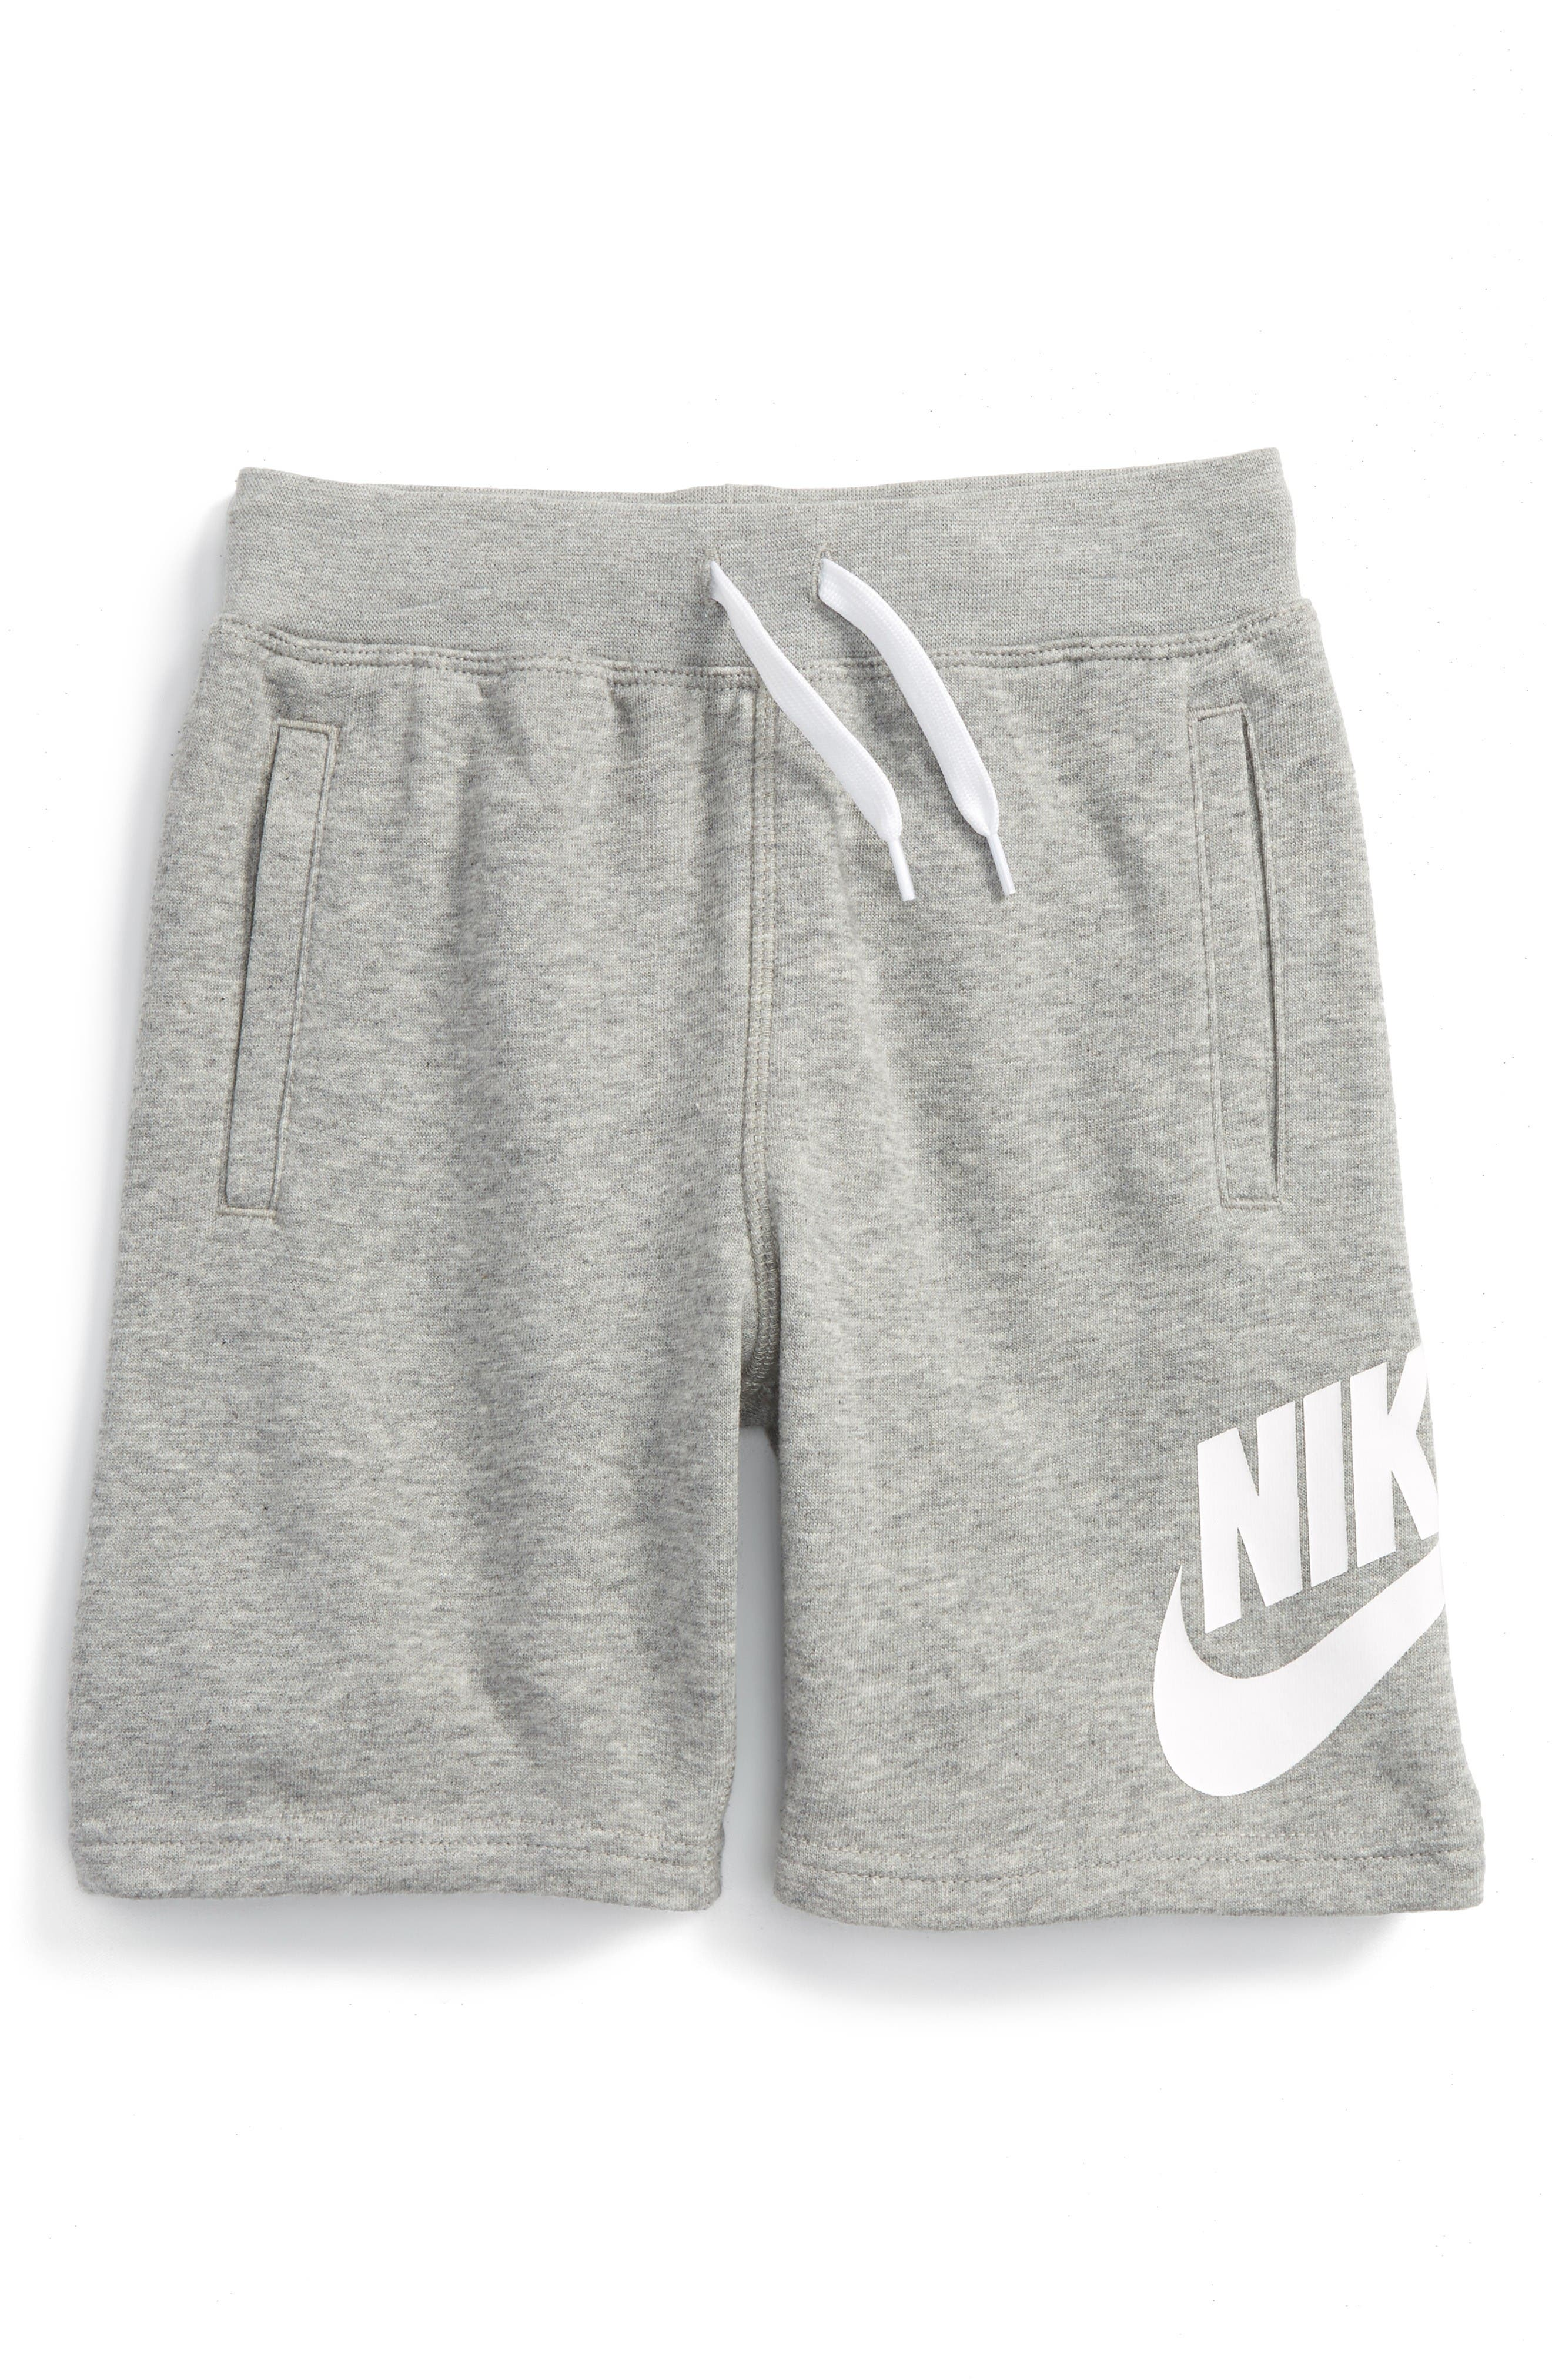 Alumni French Terry Knit Shorts,                             Main thumbnail 1, color,                             Heather Reflux